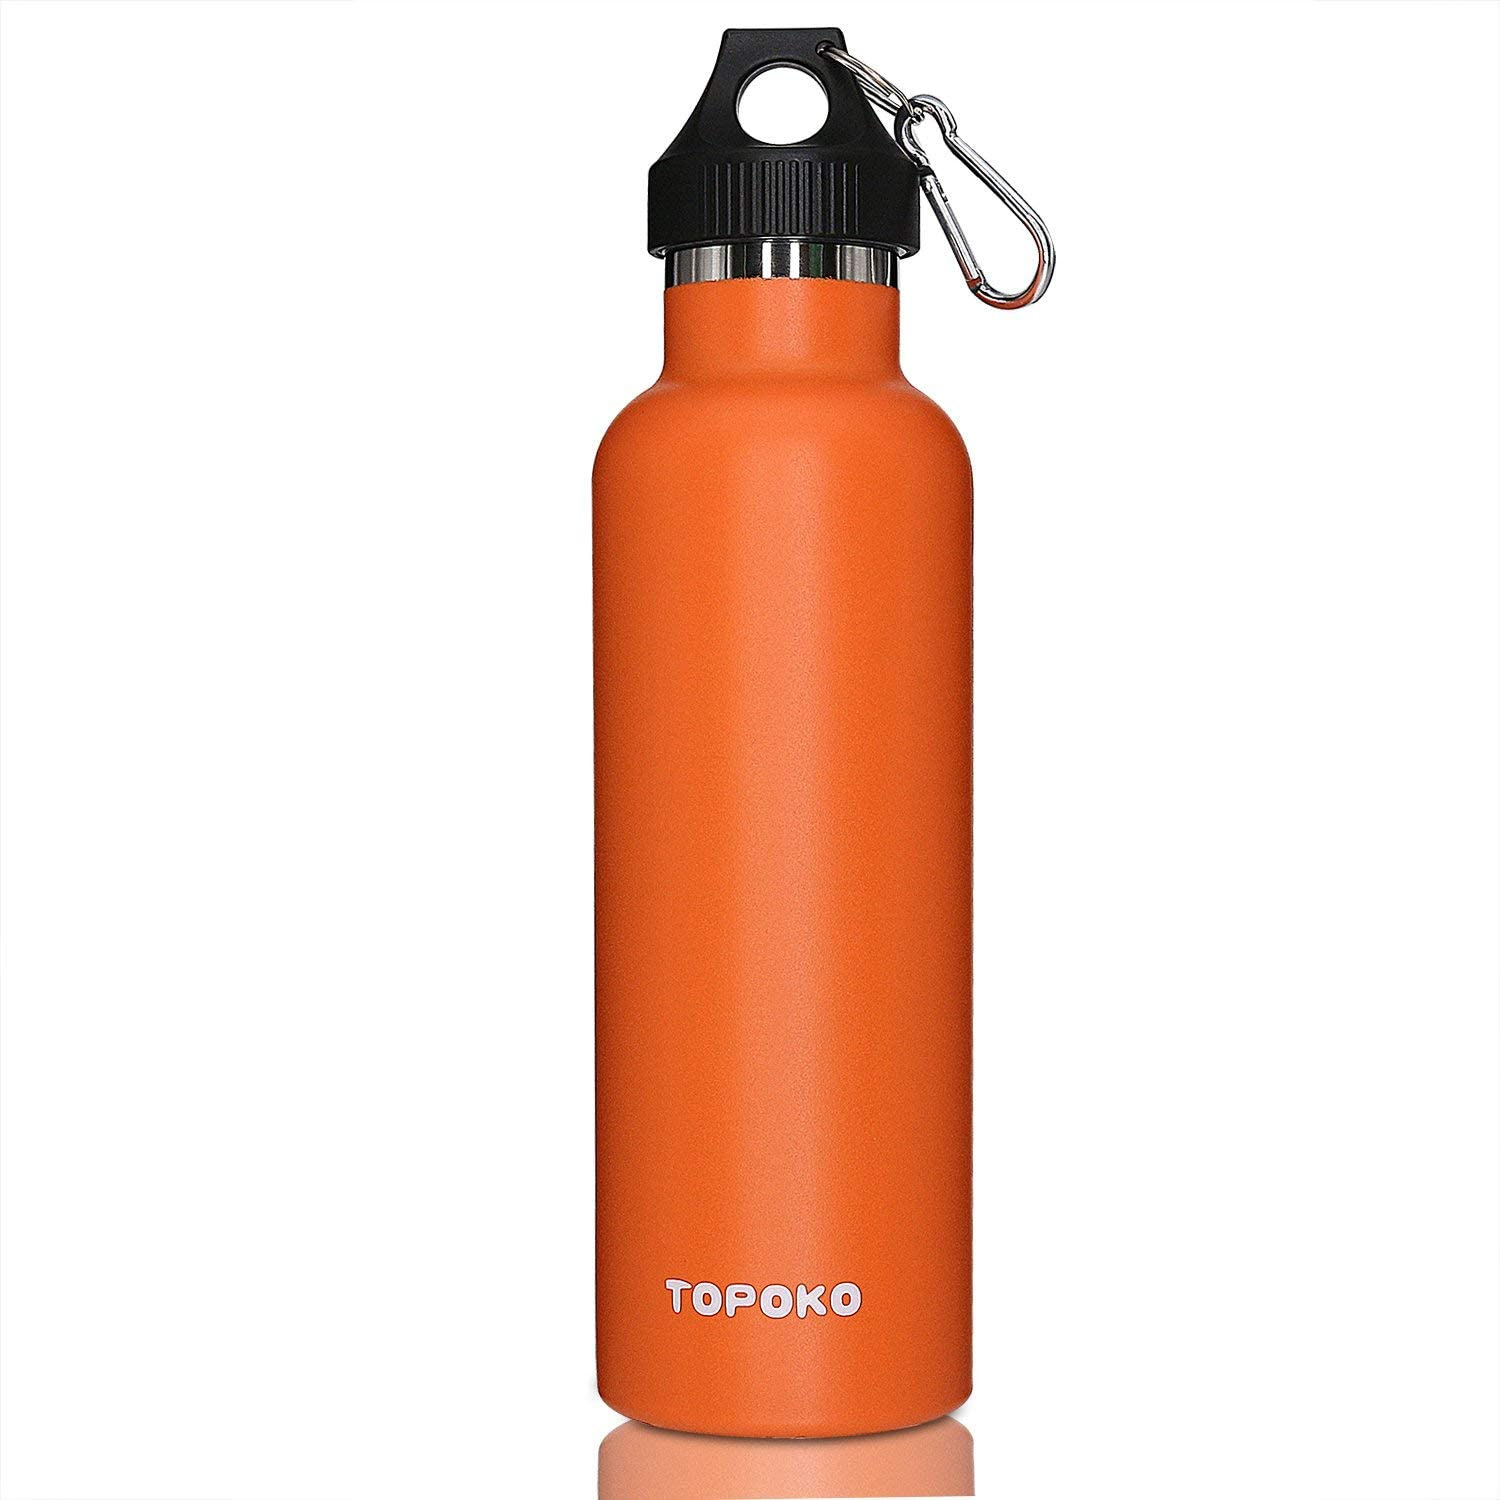 TOPOKO Colored Non-Rusty Stainless Steel Vacuum Water Bottle Double Wall Insulated Thermos, Sports Hike Travel, Leak Proof, BPA Free, 25 oz, Grey (Orange)